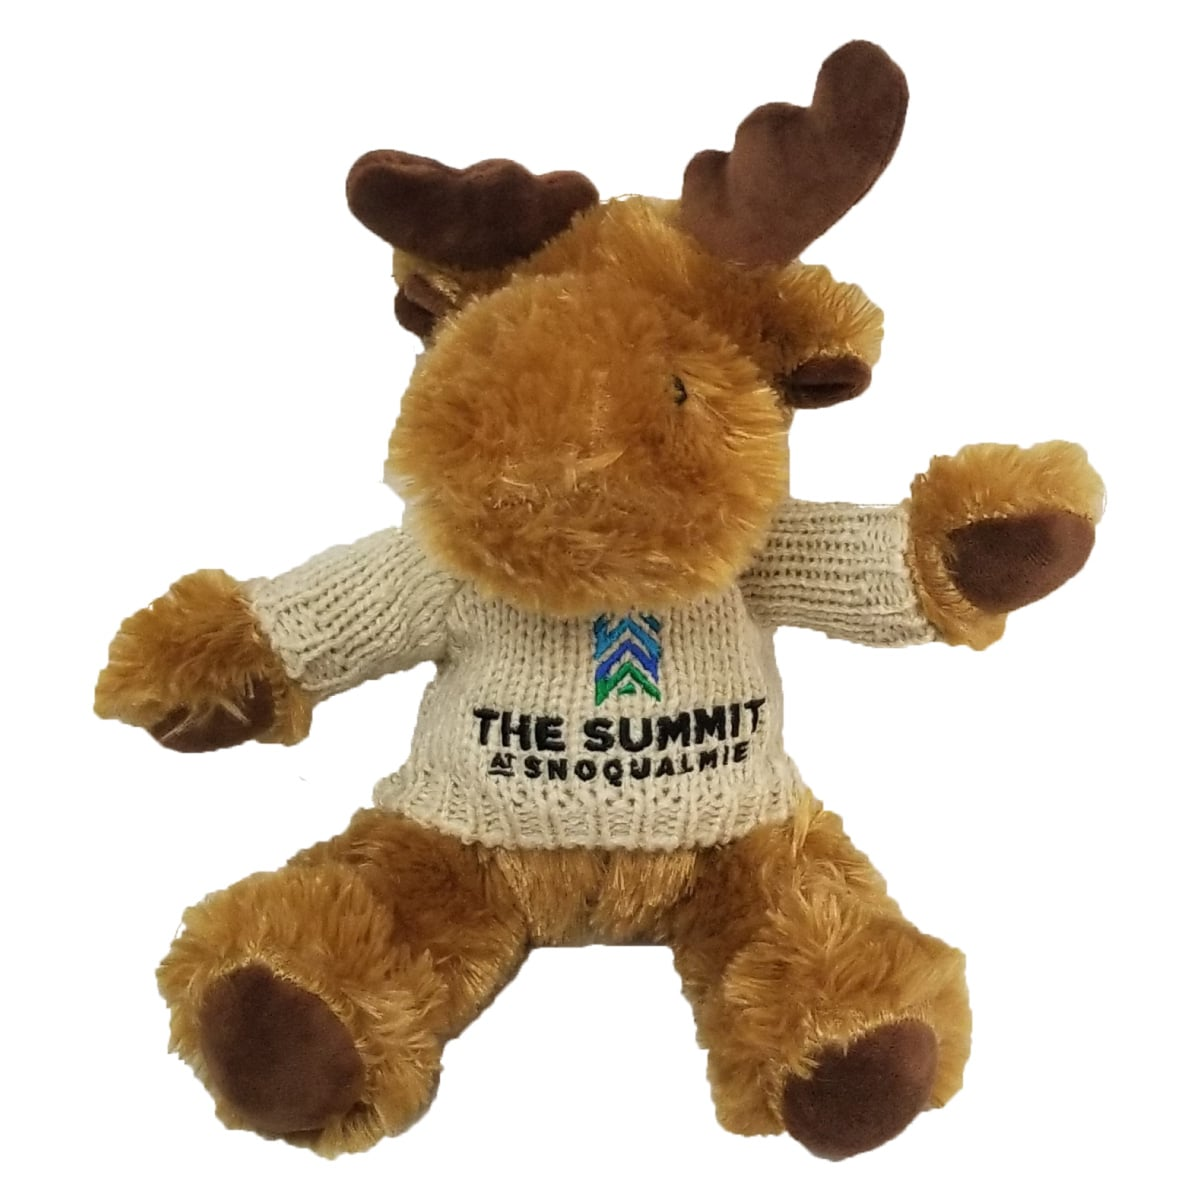 The Summit at Snoqualmie Resort Logo Plush Animal